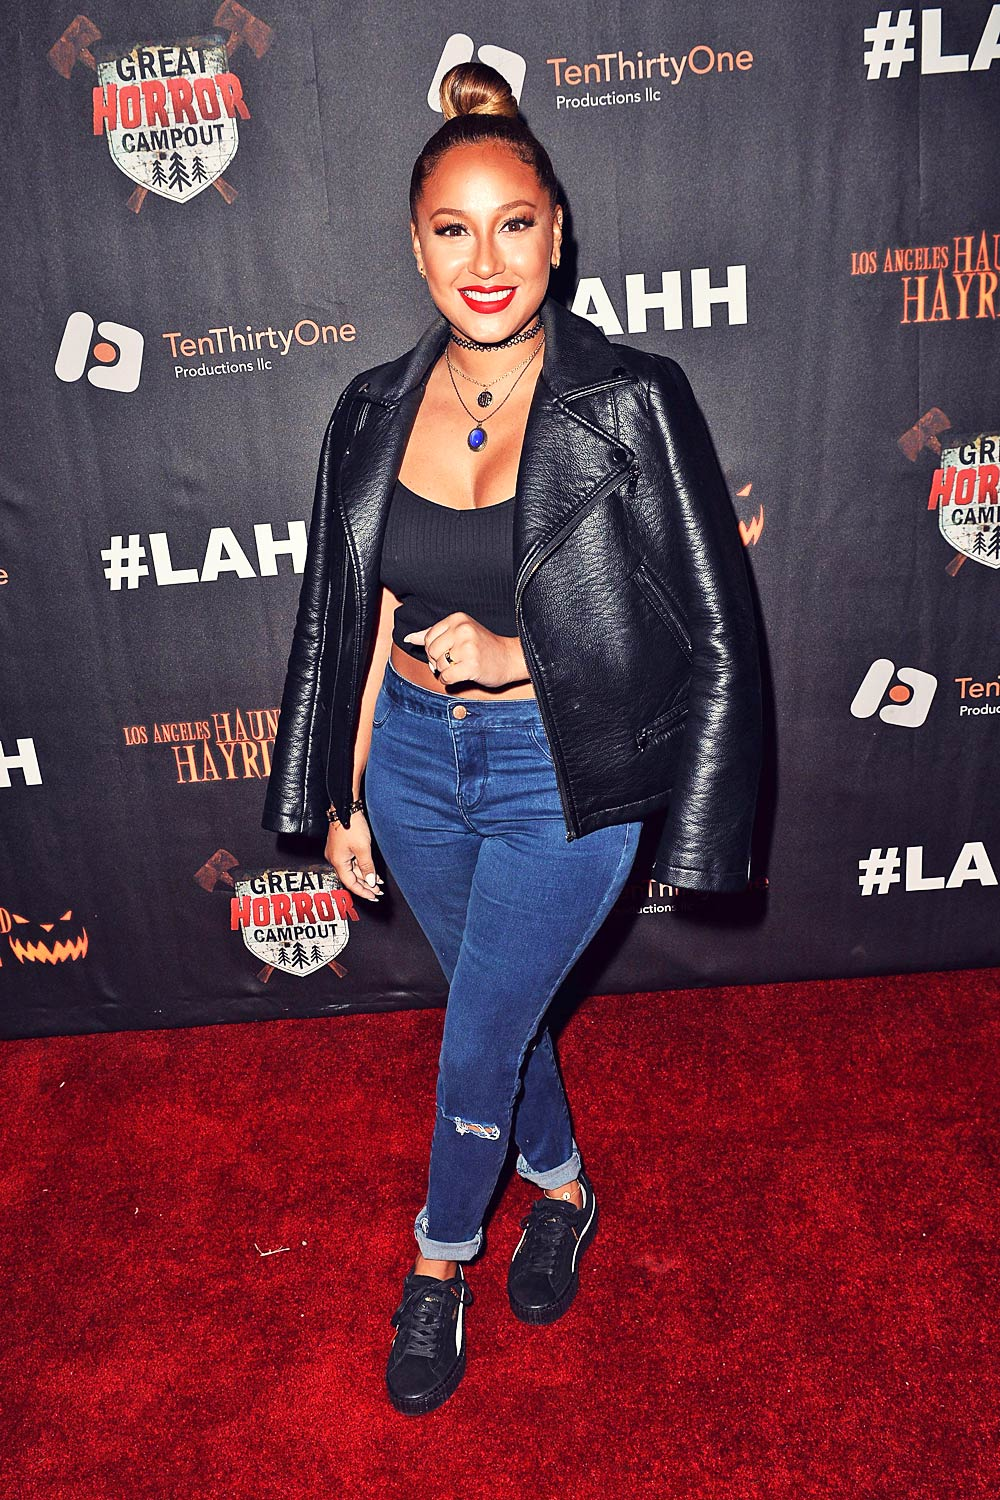 Adrienne Bailon Attends Griffith Park Haunted Hayride